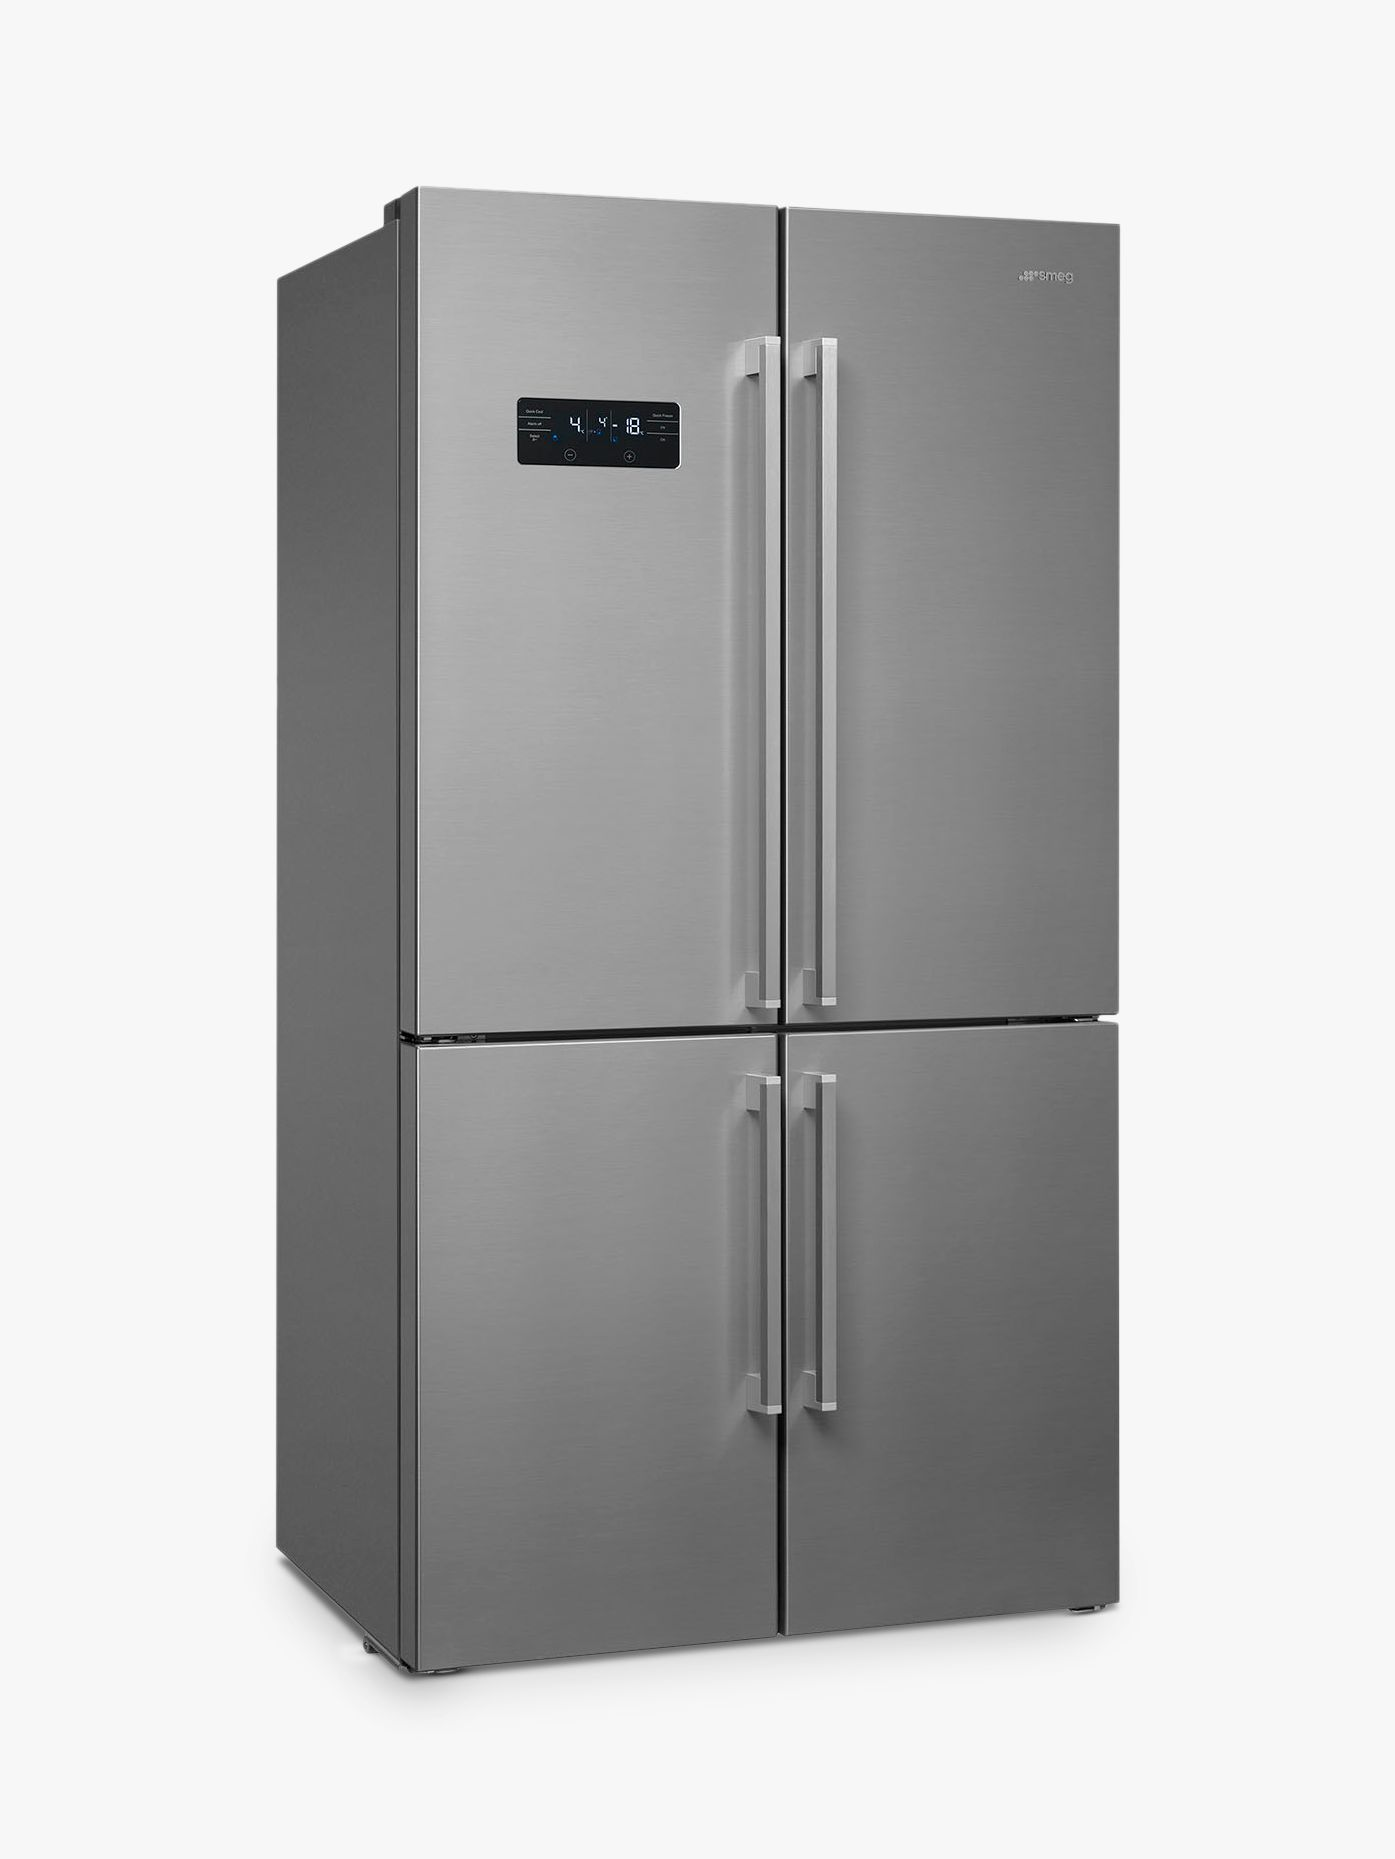 Smeg Smeg FQ60X2PE1 4-Door American Style Fridge Freezer, A++ Energy Rating, 91cm Wide, Stainless Steel